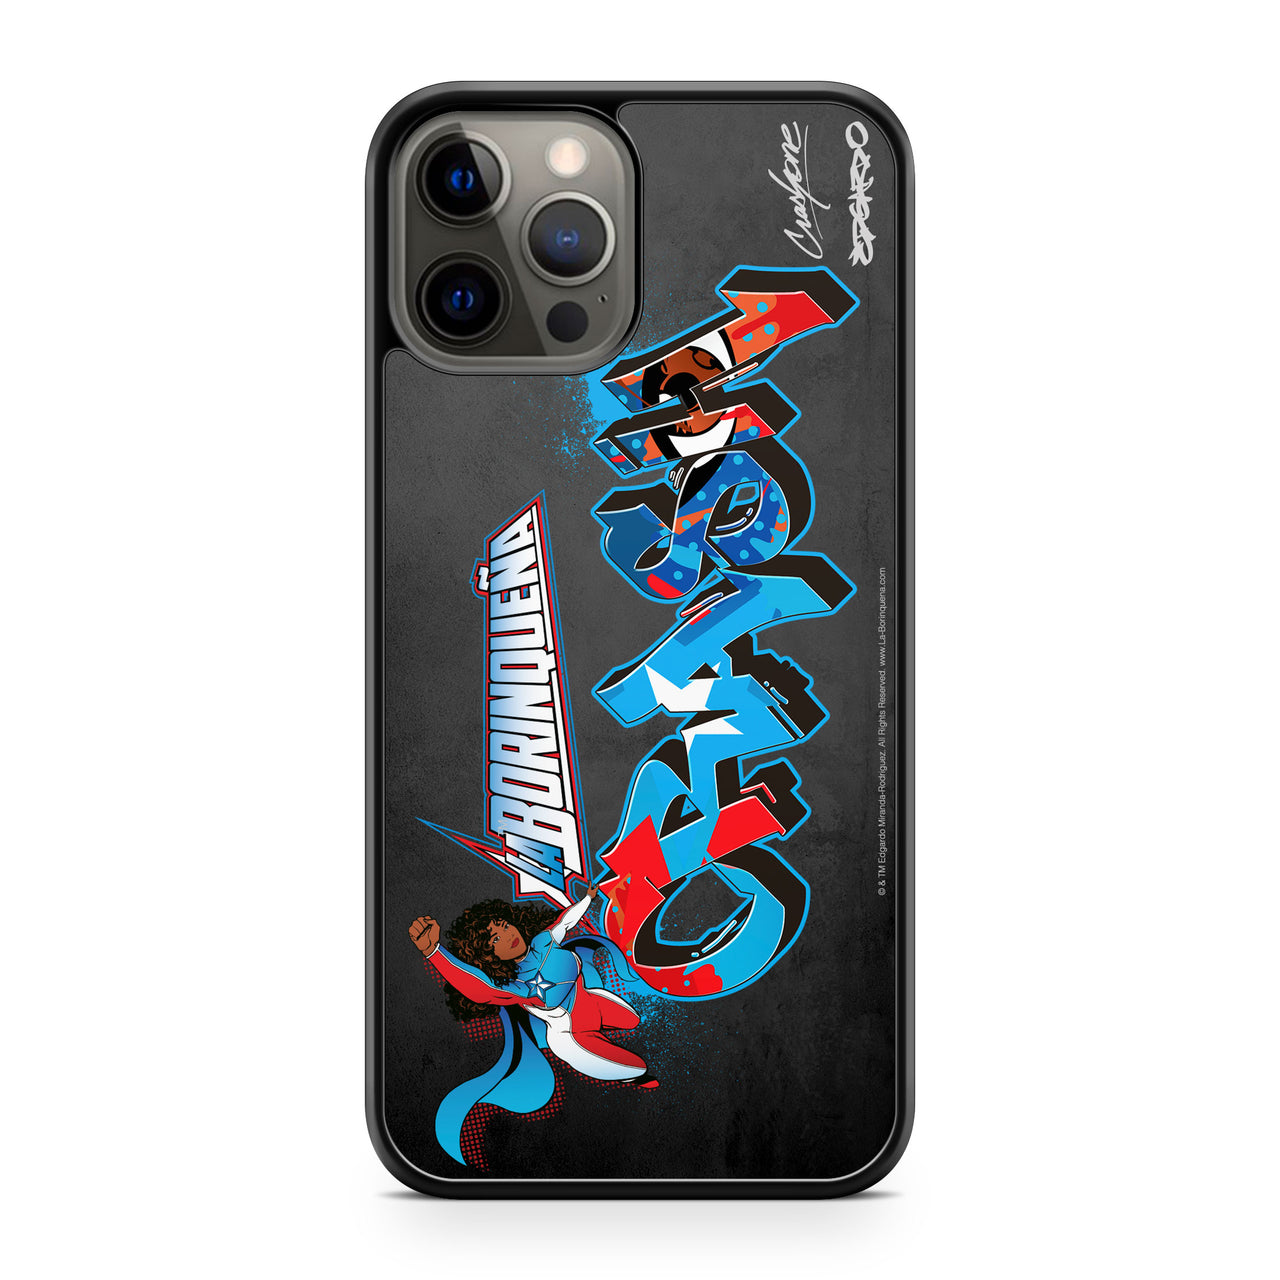 La Borinqueña X Crash One Personalized Mobile Phone Case